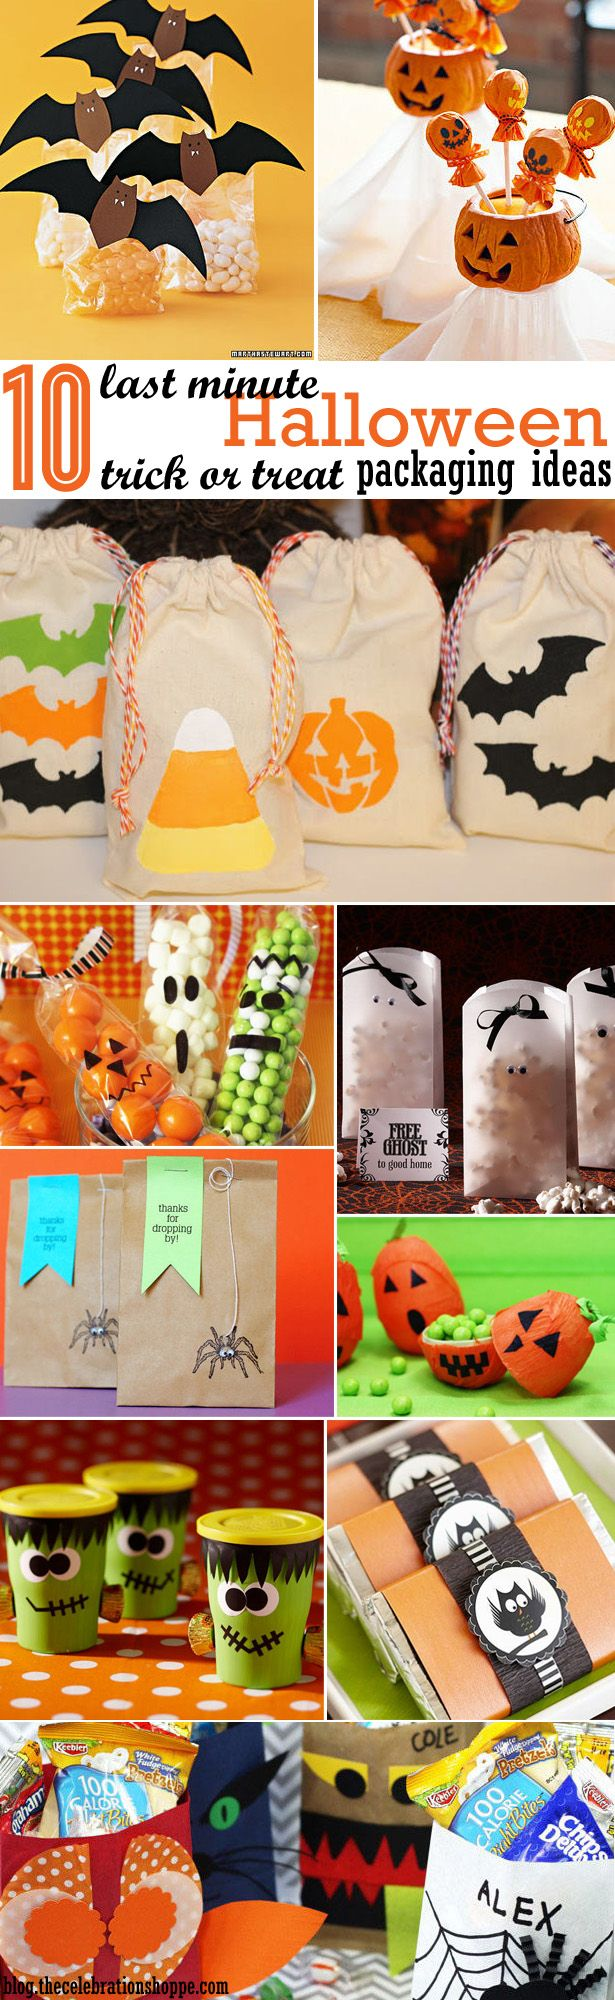 10 Last Minute Trick or Treat Packaging Ideas via blog.thecelebrationshoppe.com #Halloween #crafts